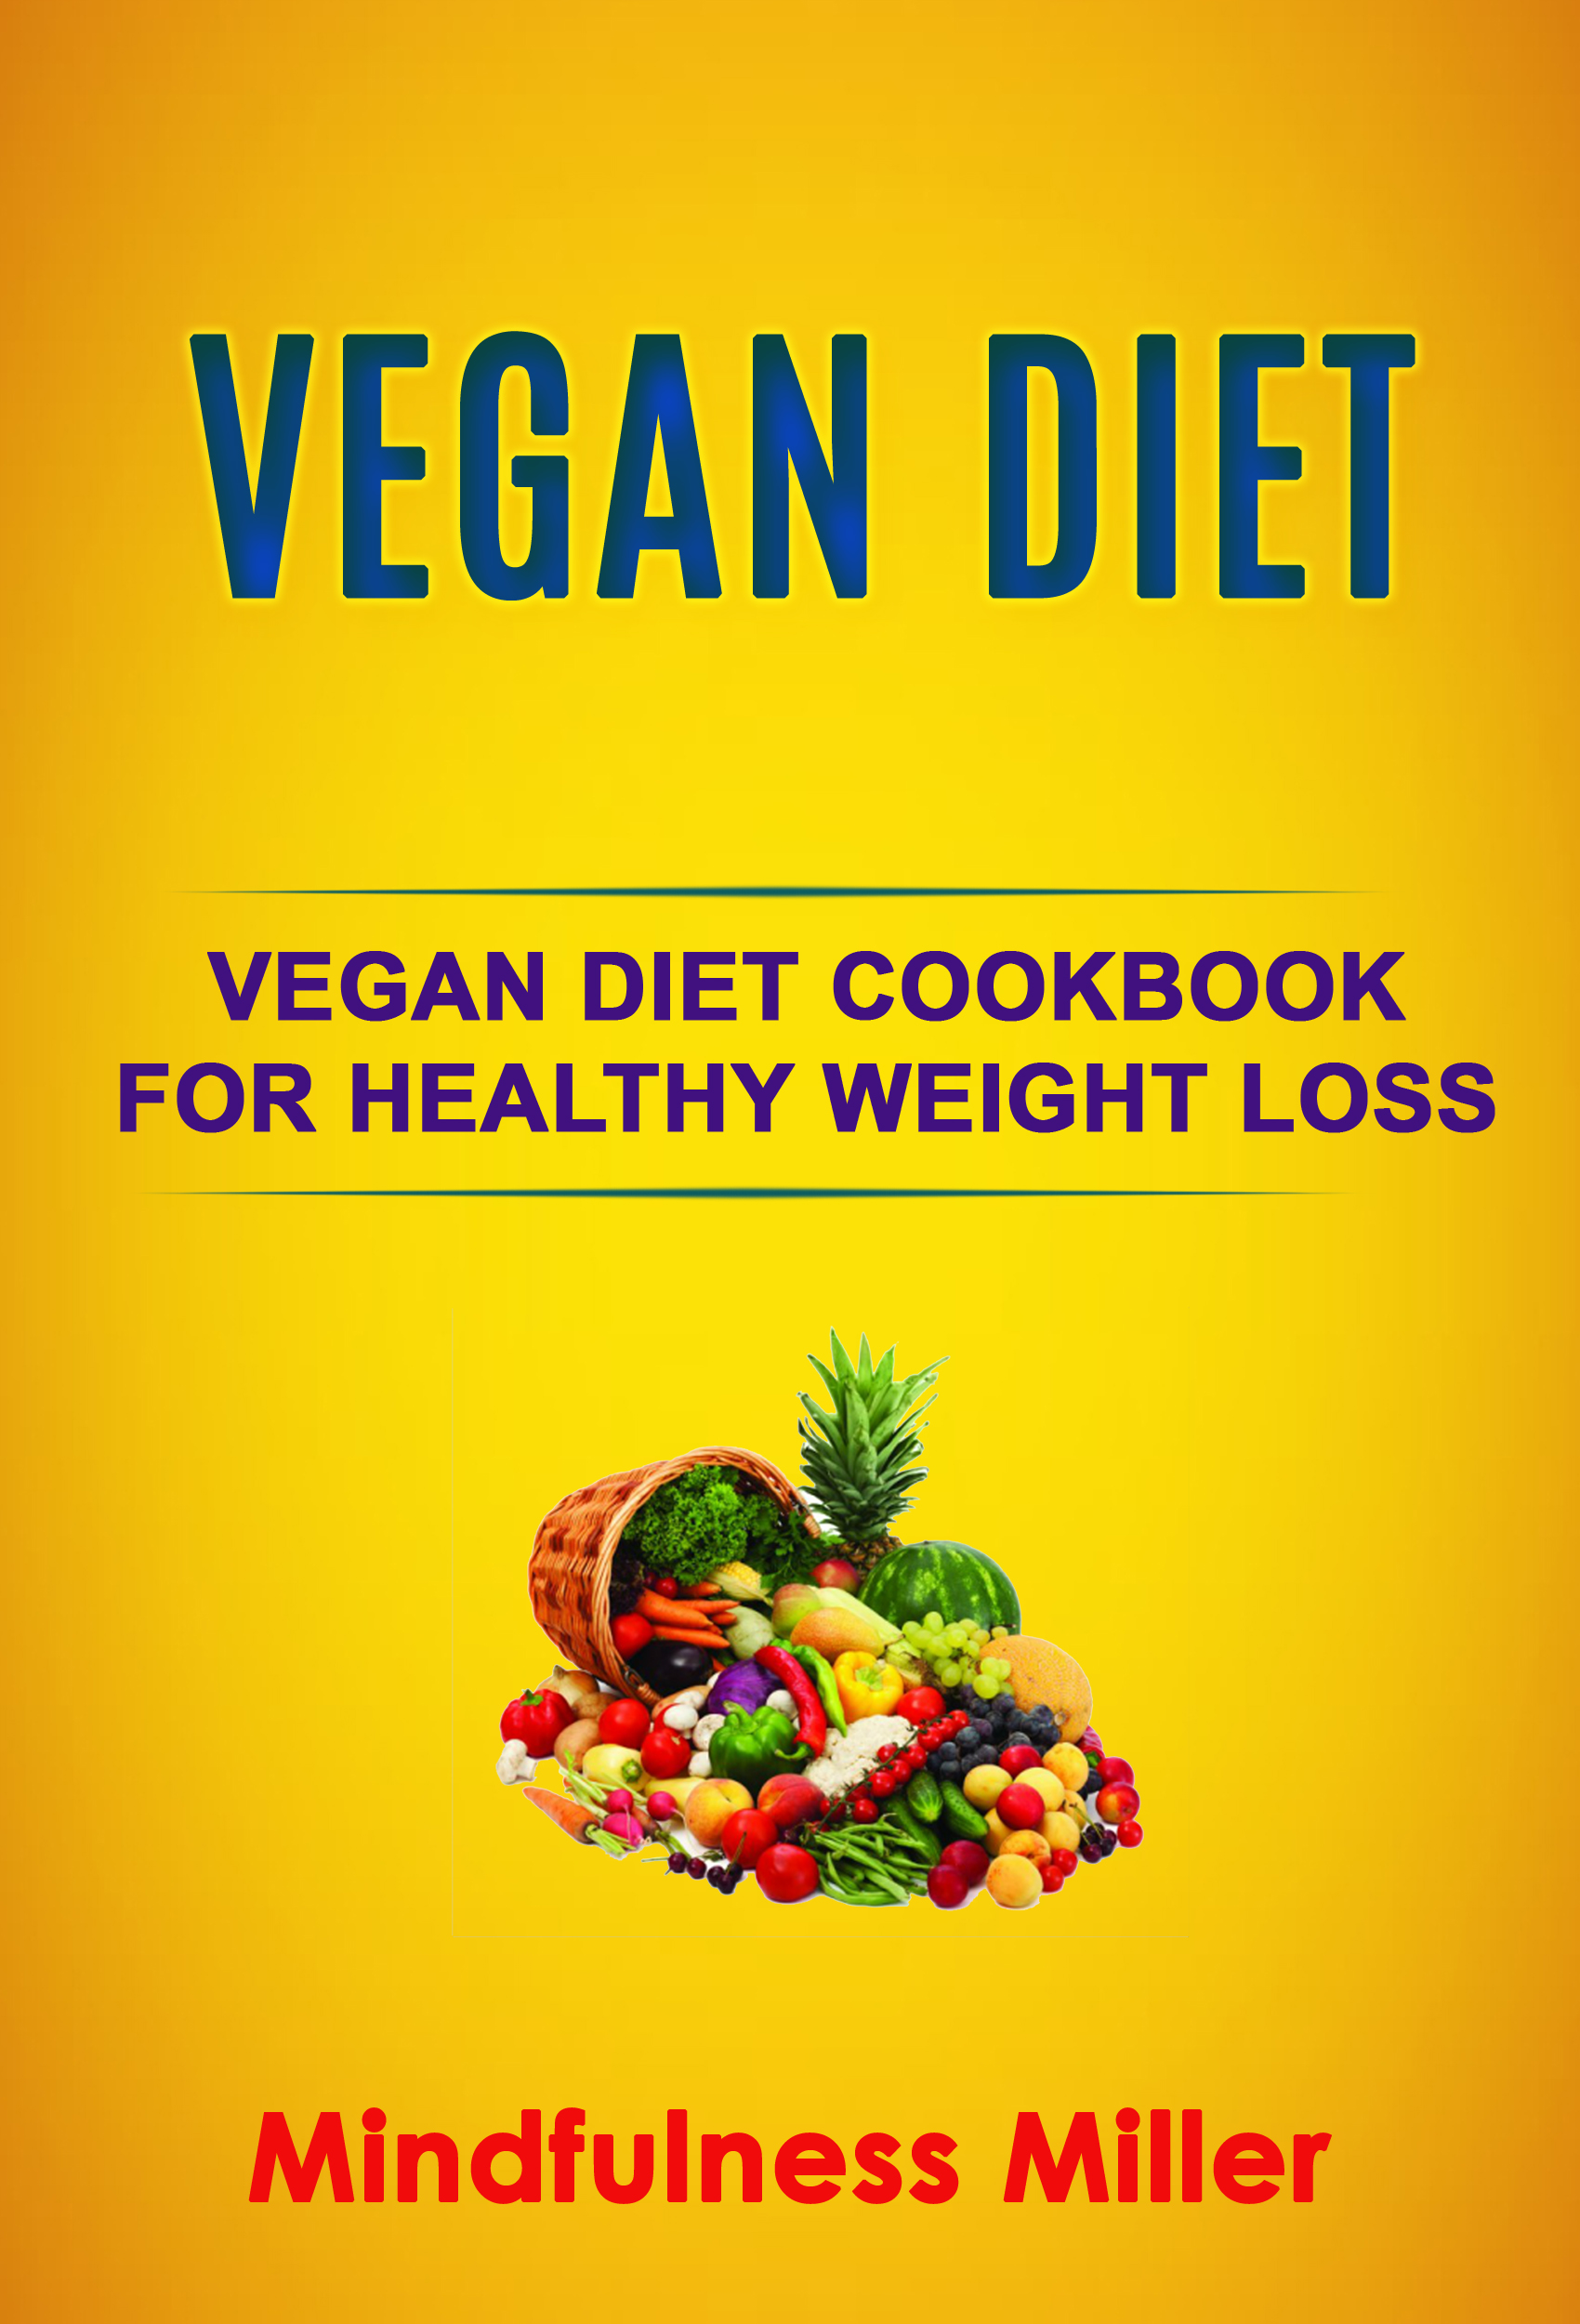 Vegan diet: vegan diet cookbook for healthy weight loss